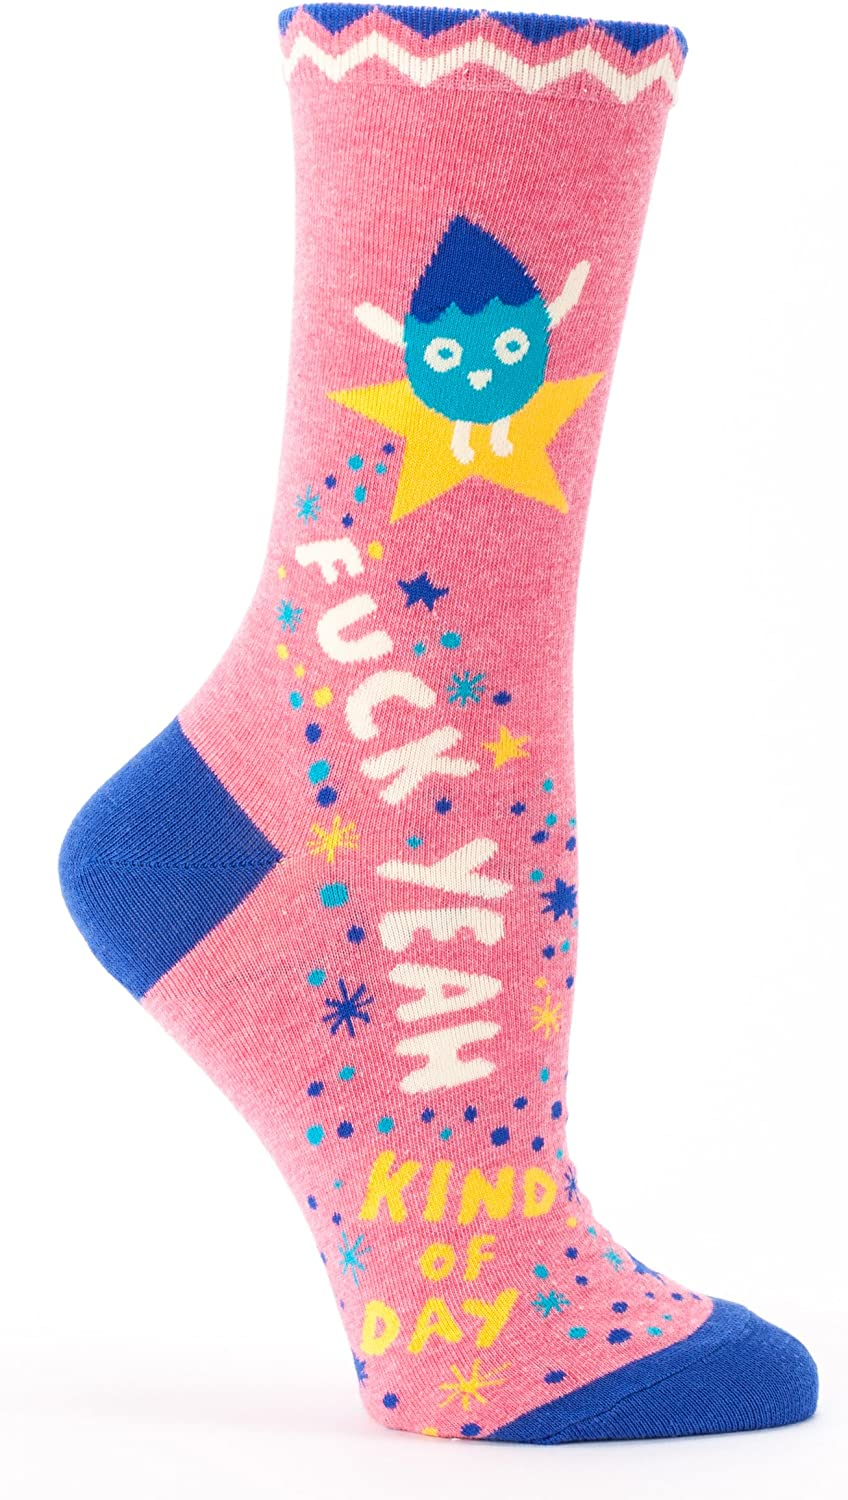 Fuck Yeah Kind Of Day Crew Socks At Amazon Women S Clothing Store